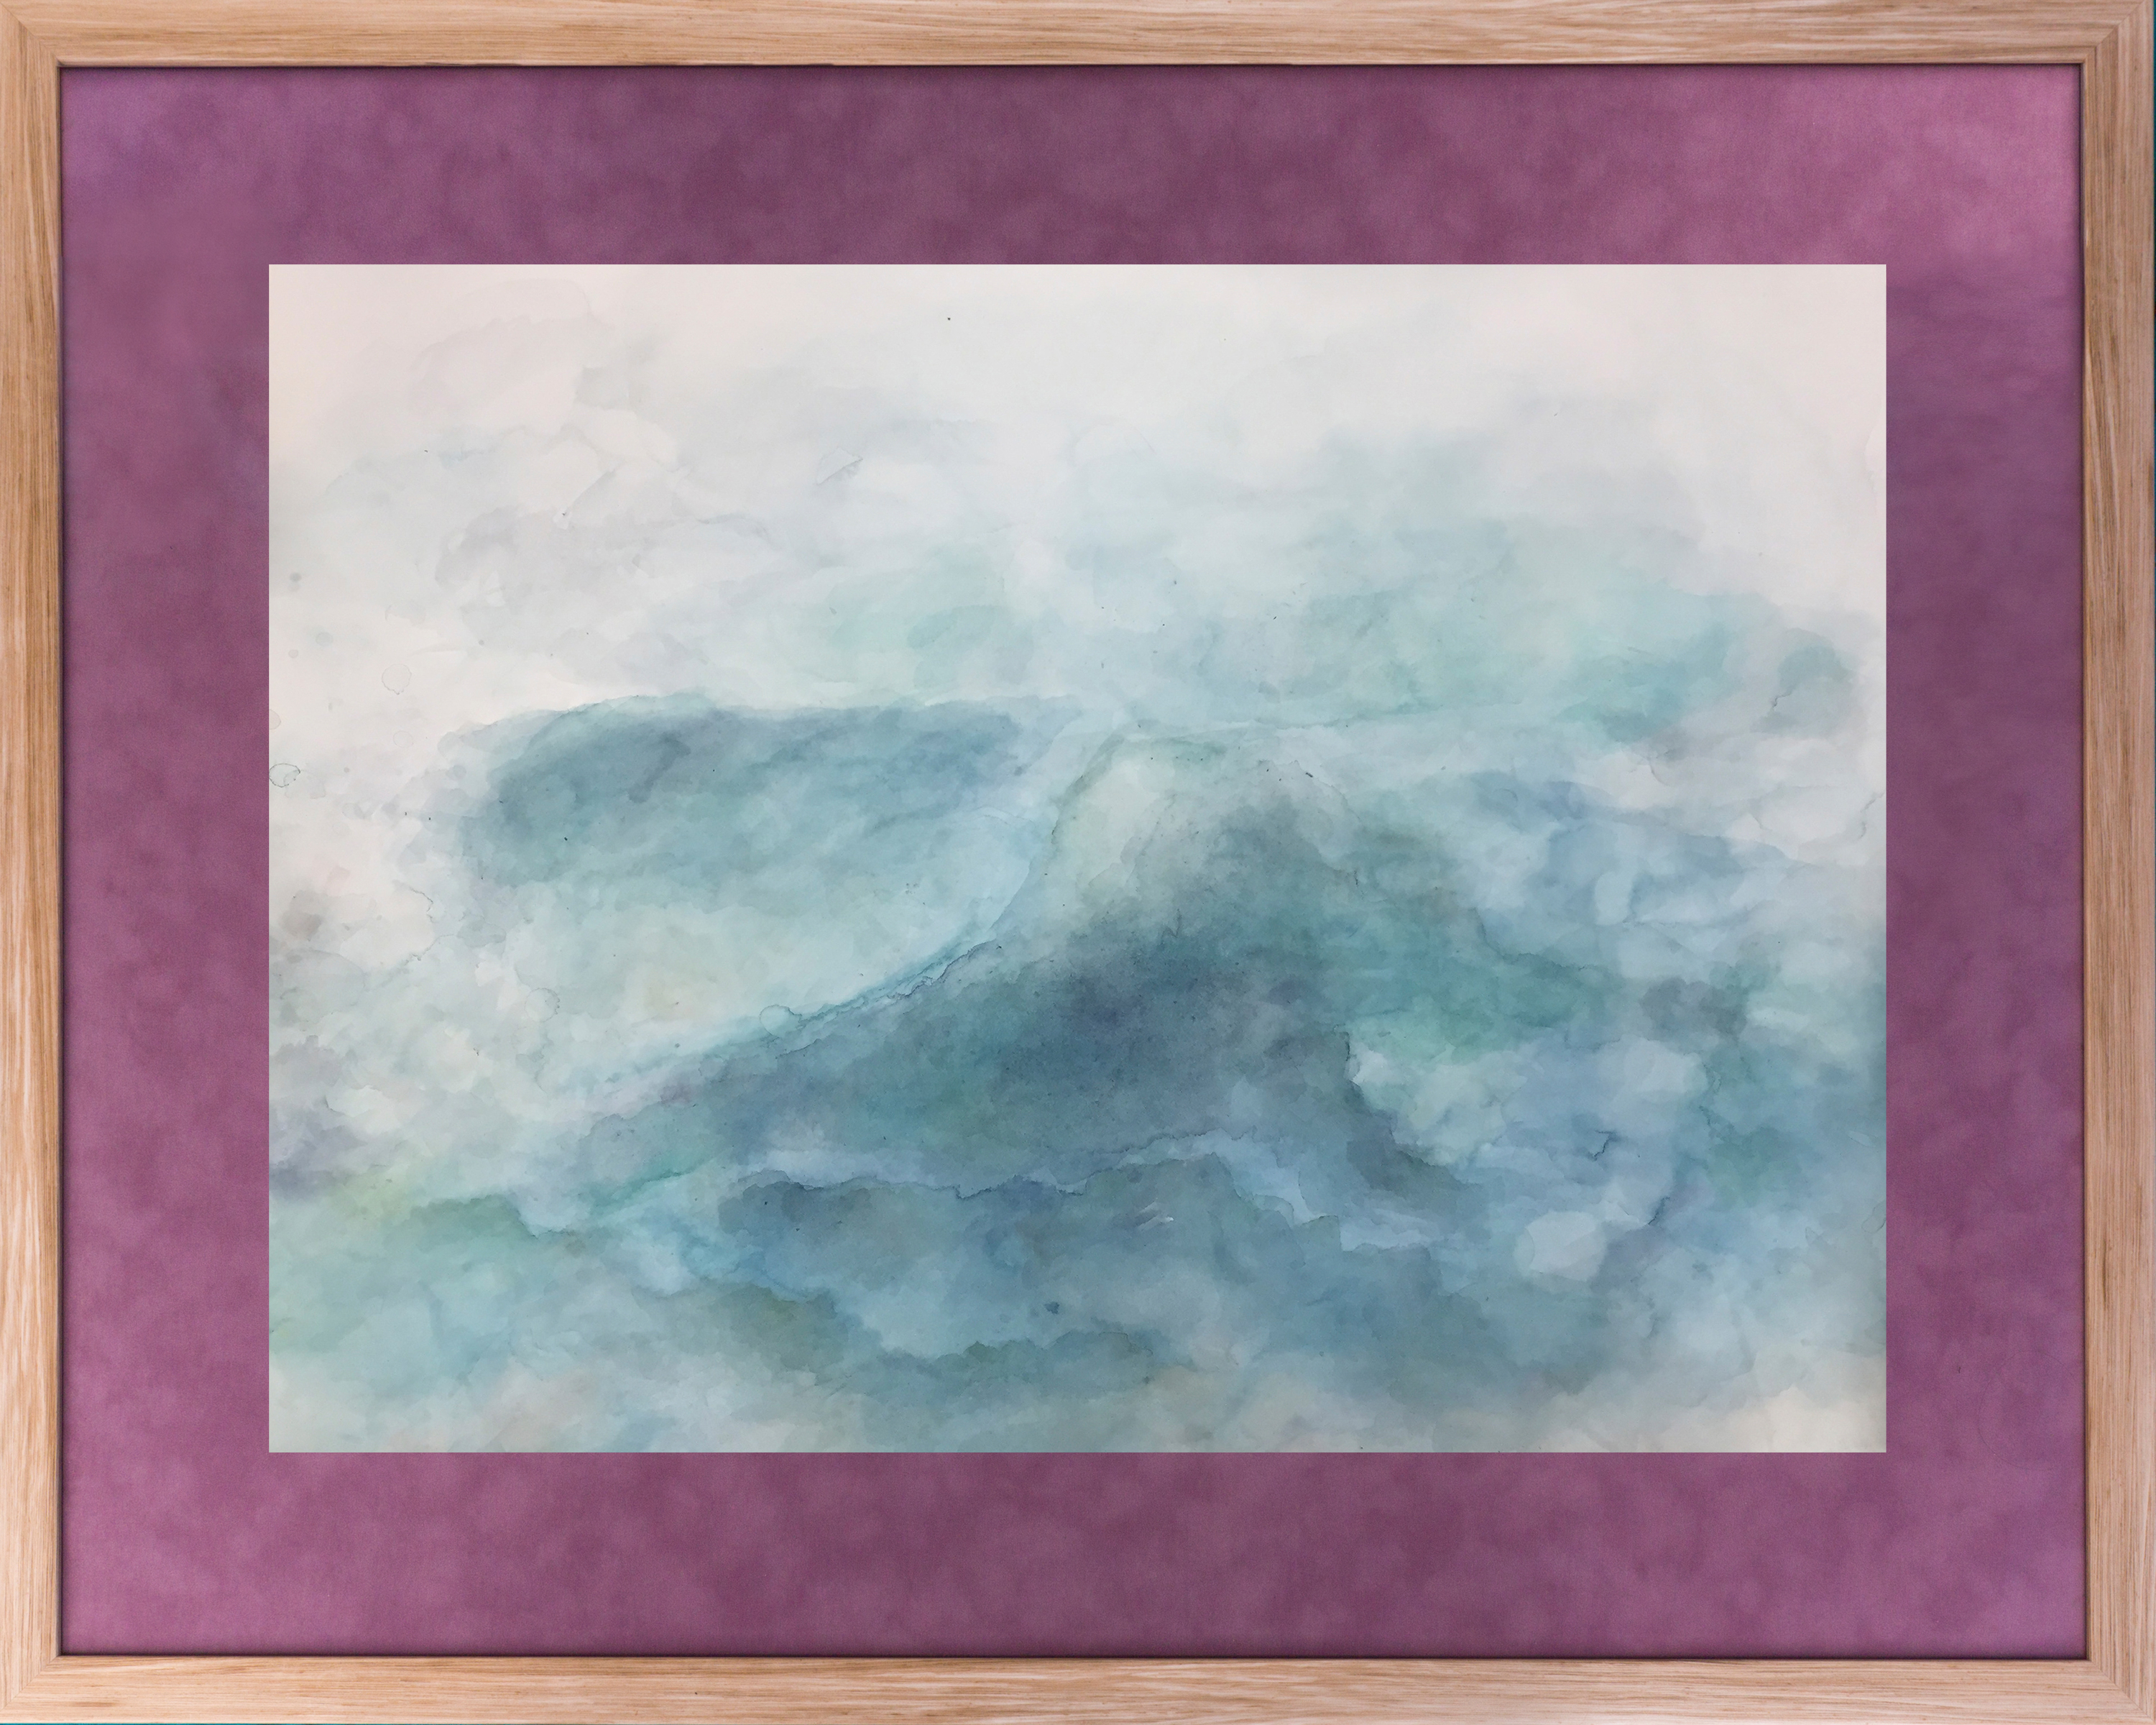 Kaplan samantha calm seas watercolor on stonehenge paper 32x40  700 m3xxhw